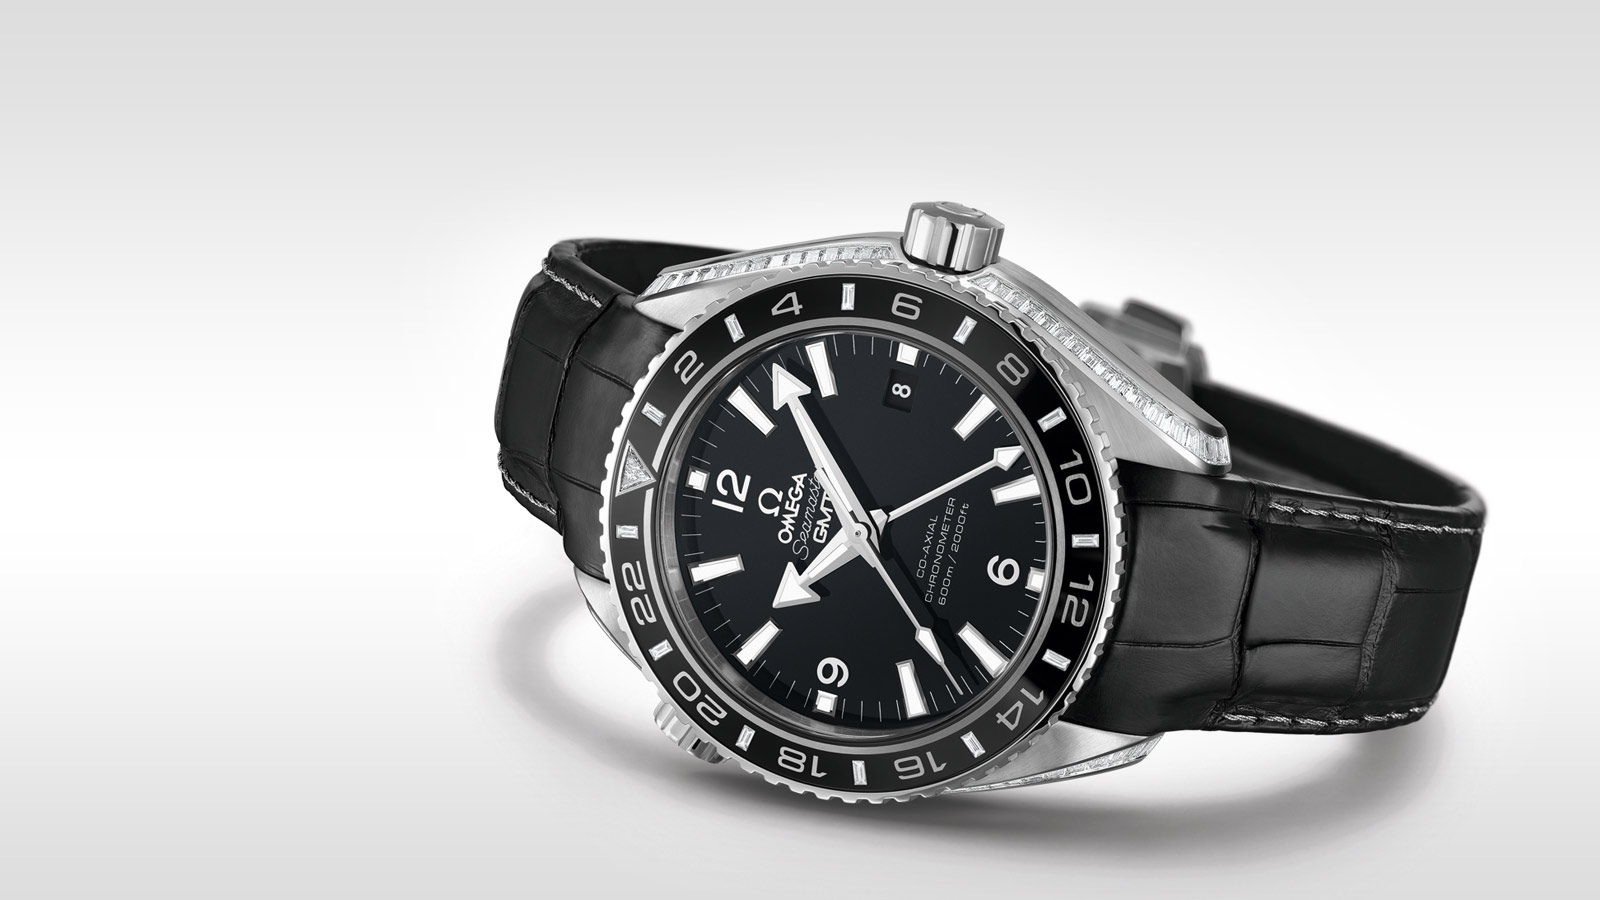 Seamaster Planet Ocean 600M Planet Ocean 600M Omega Co‑axial GMT 43.5 mm - 232.98.44.22.01.001 - View 1